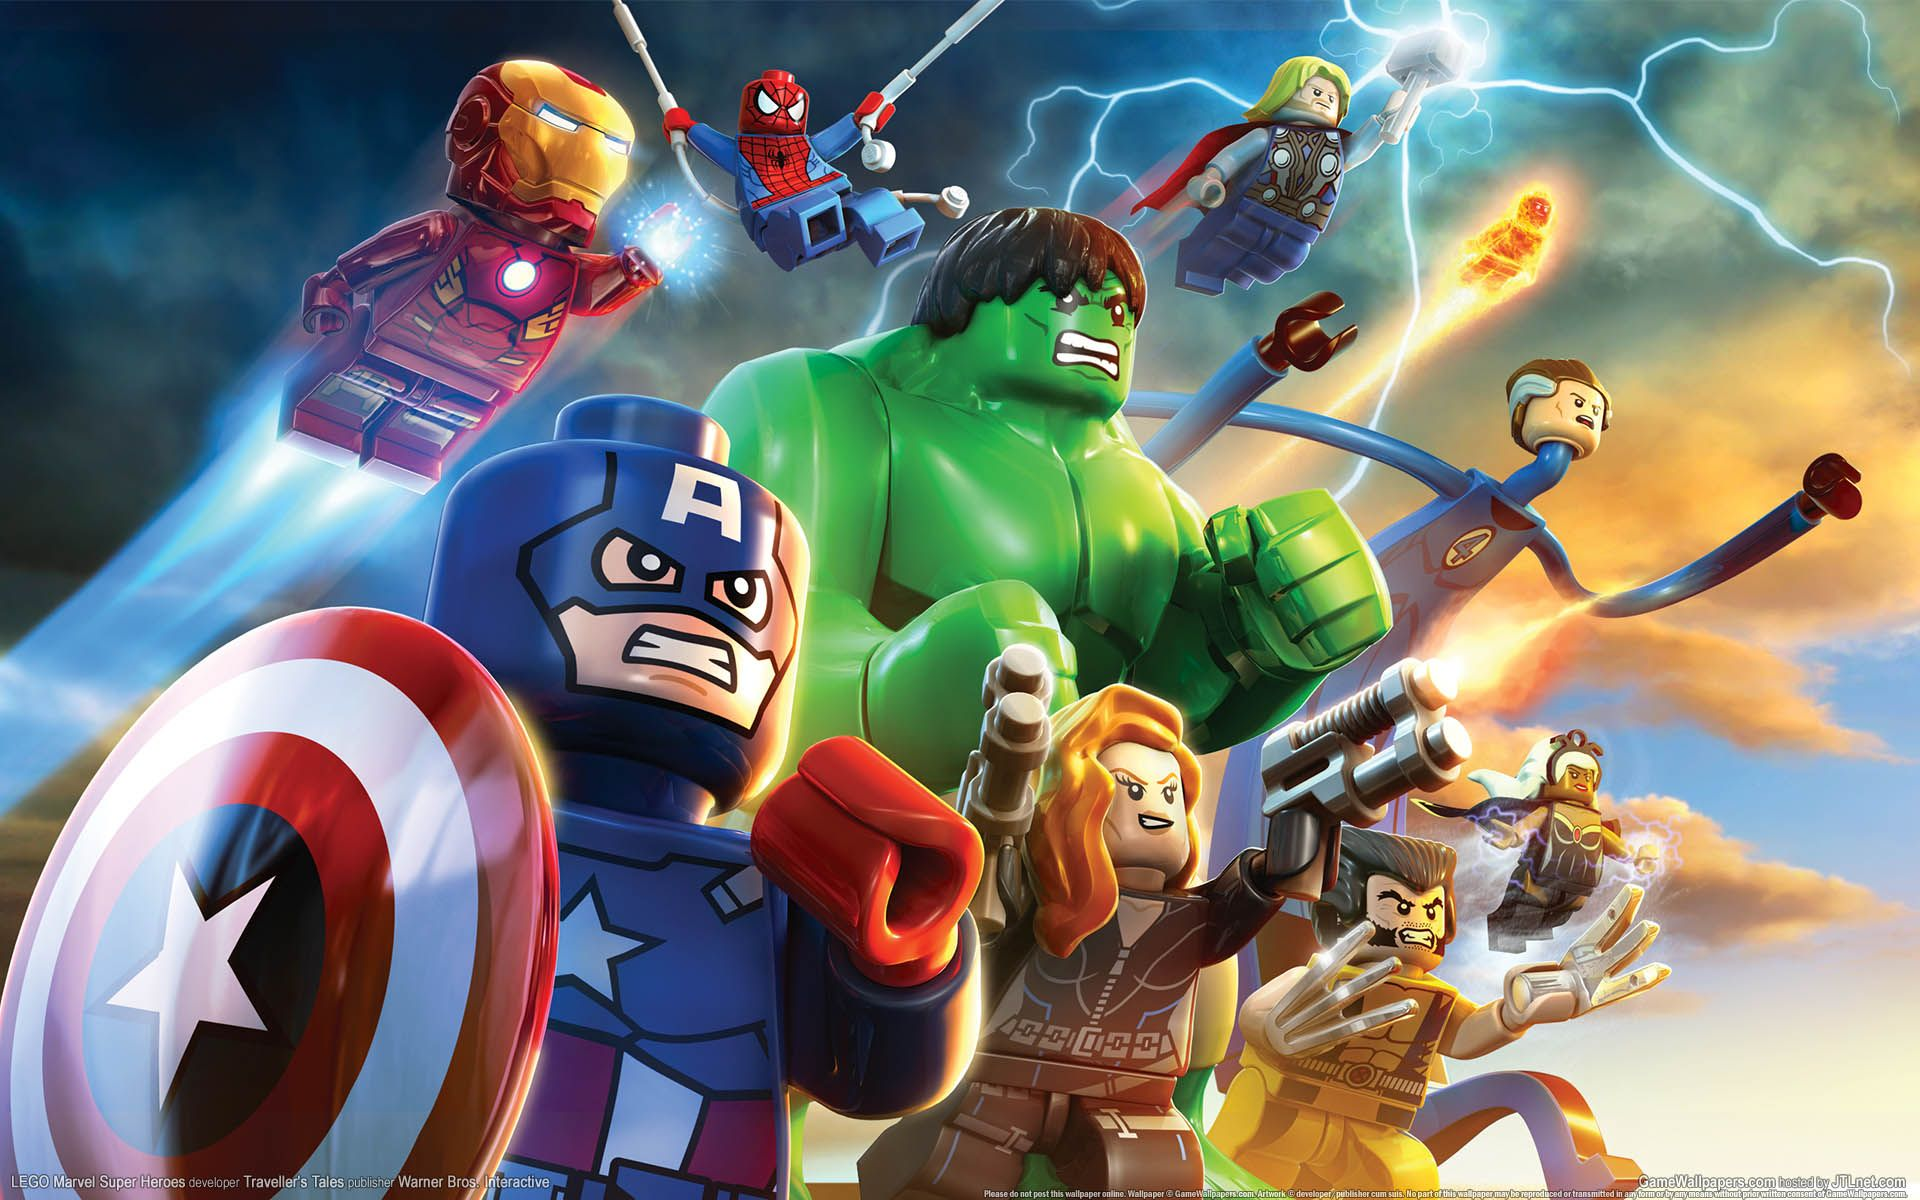 1920x1200 Lego Marvel Super Heroes Game HD Wallpaper for Desktop - Game HD ...